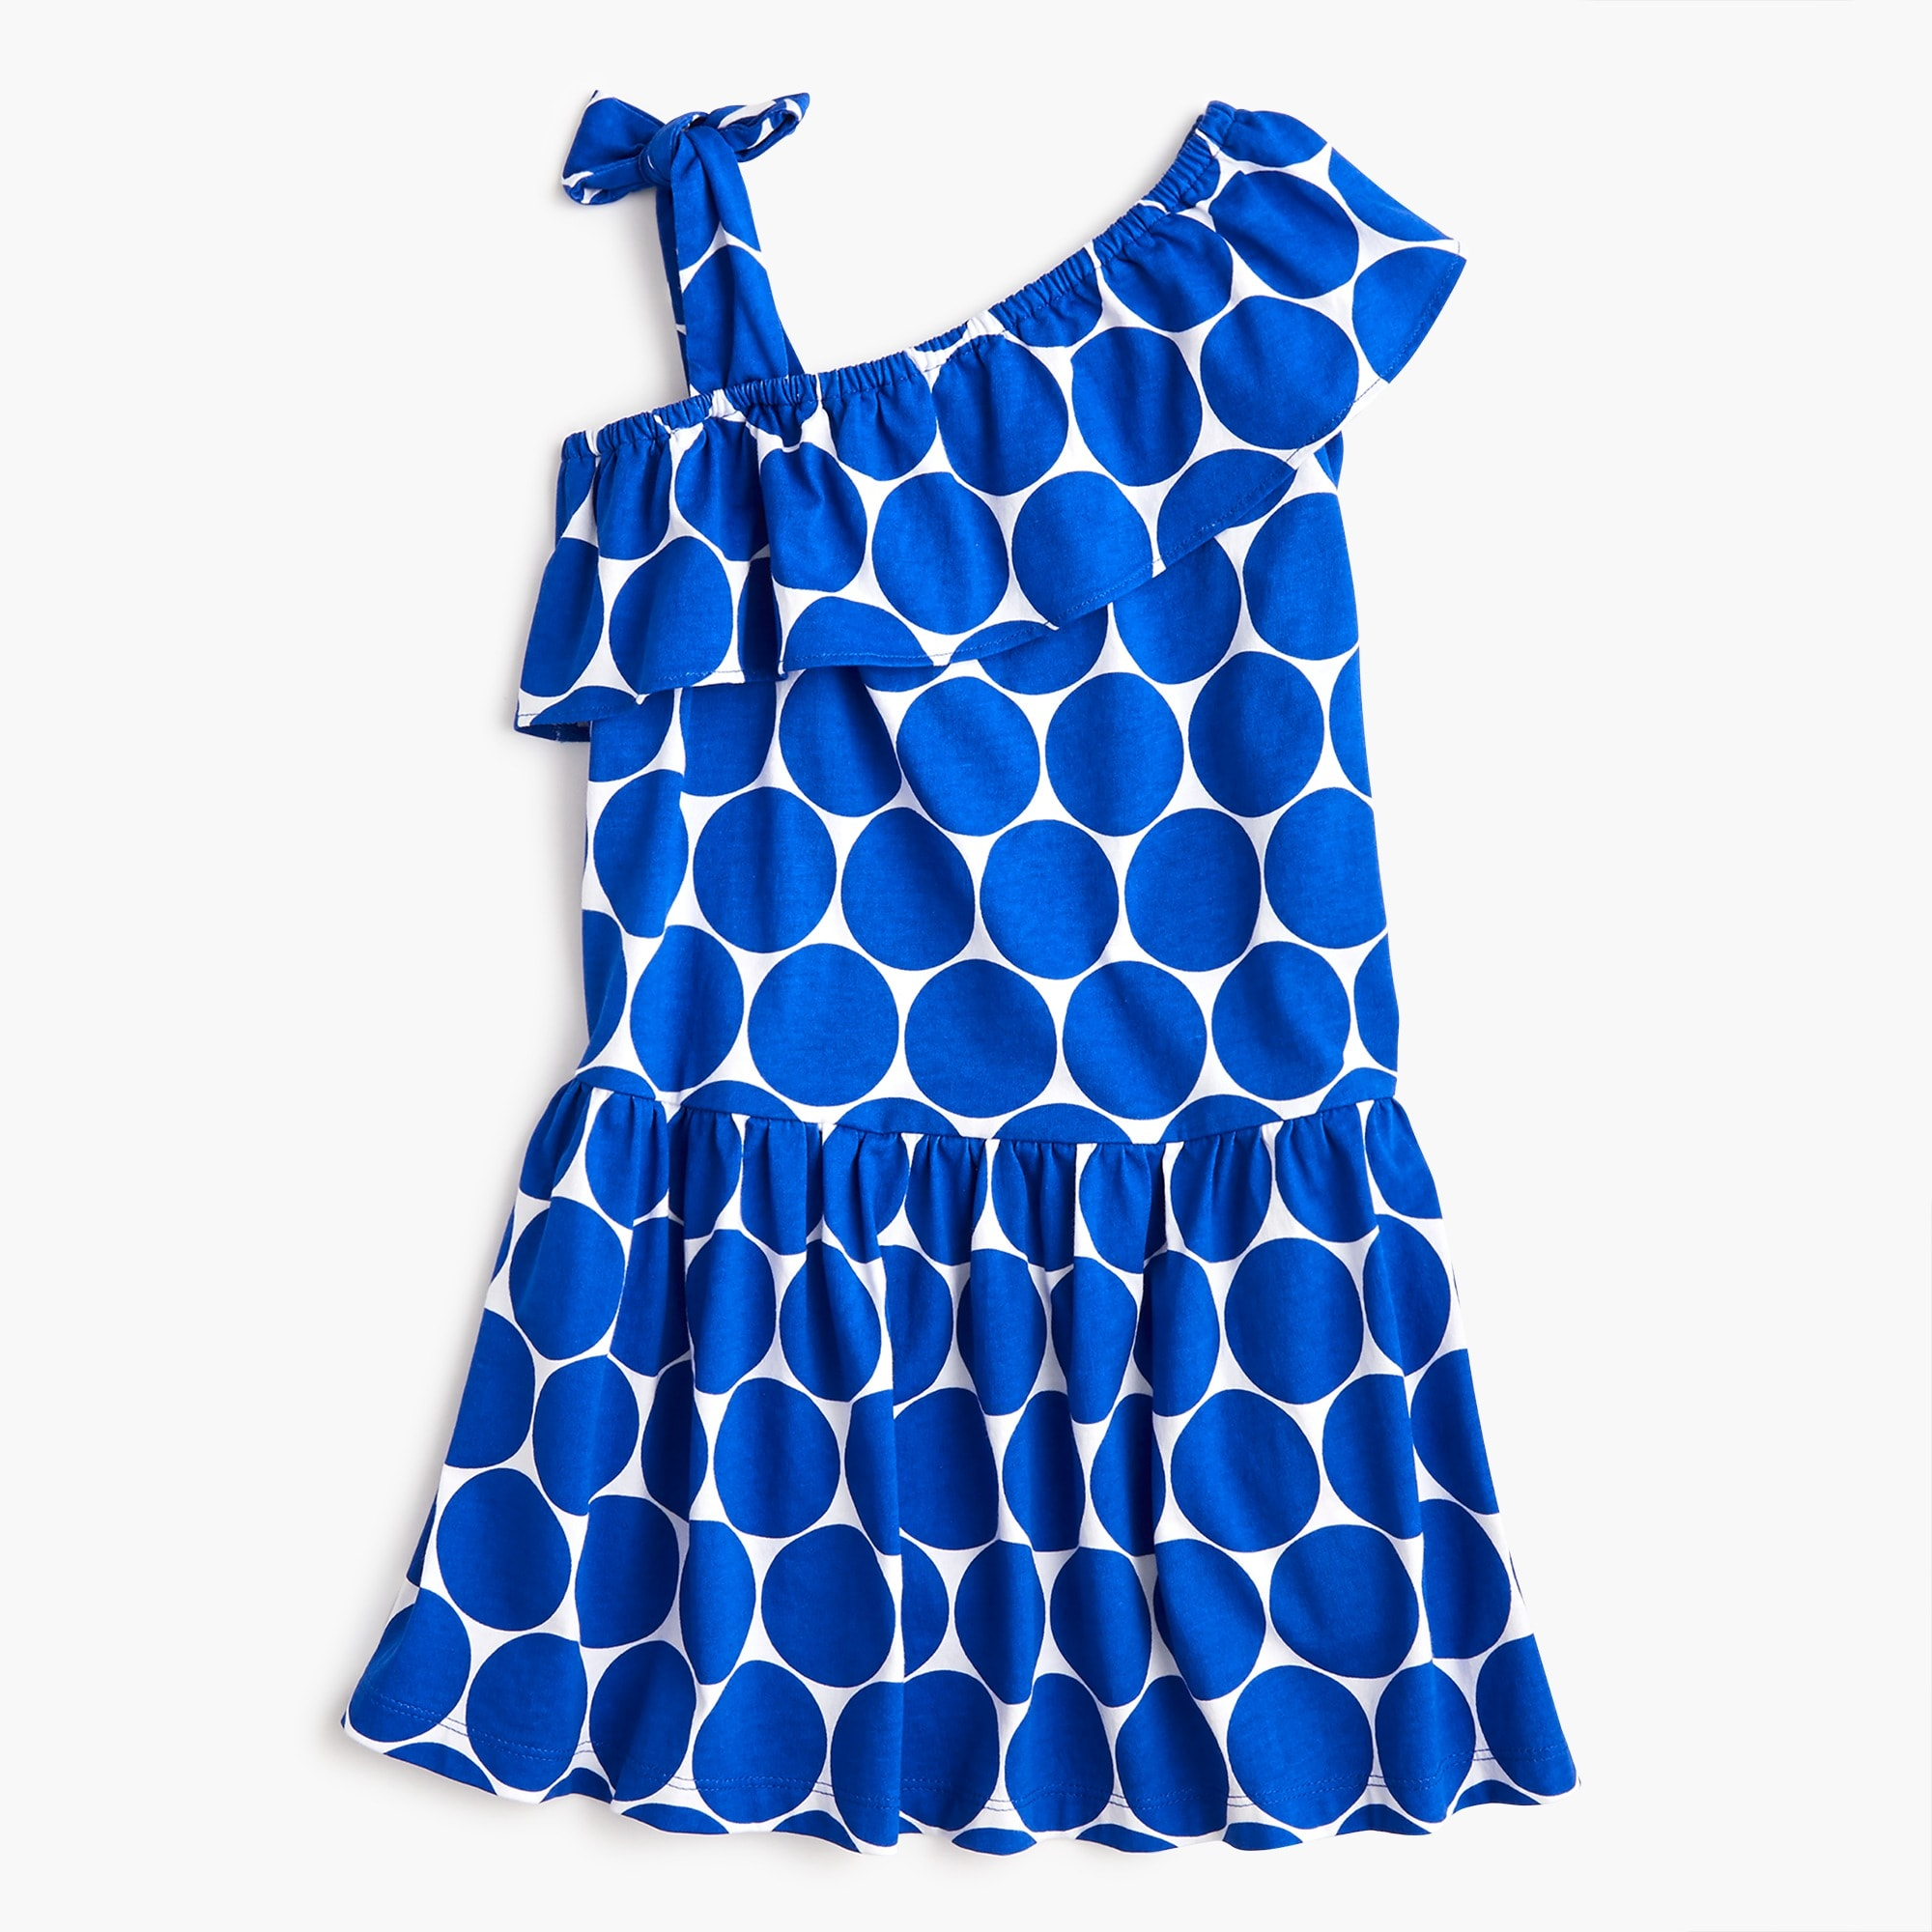 Girls' asymmetrical dress in dots girl new arrivals c